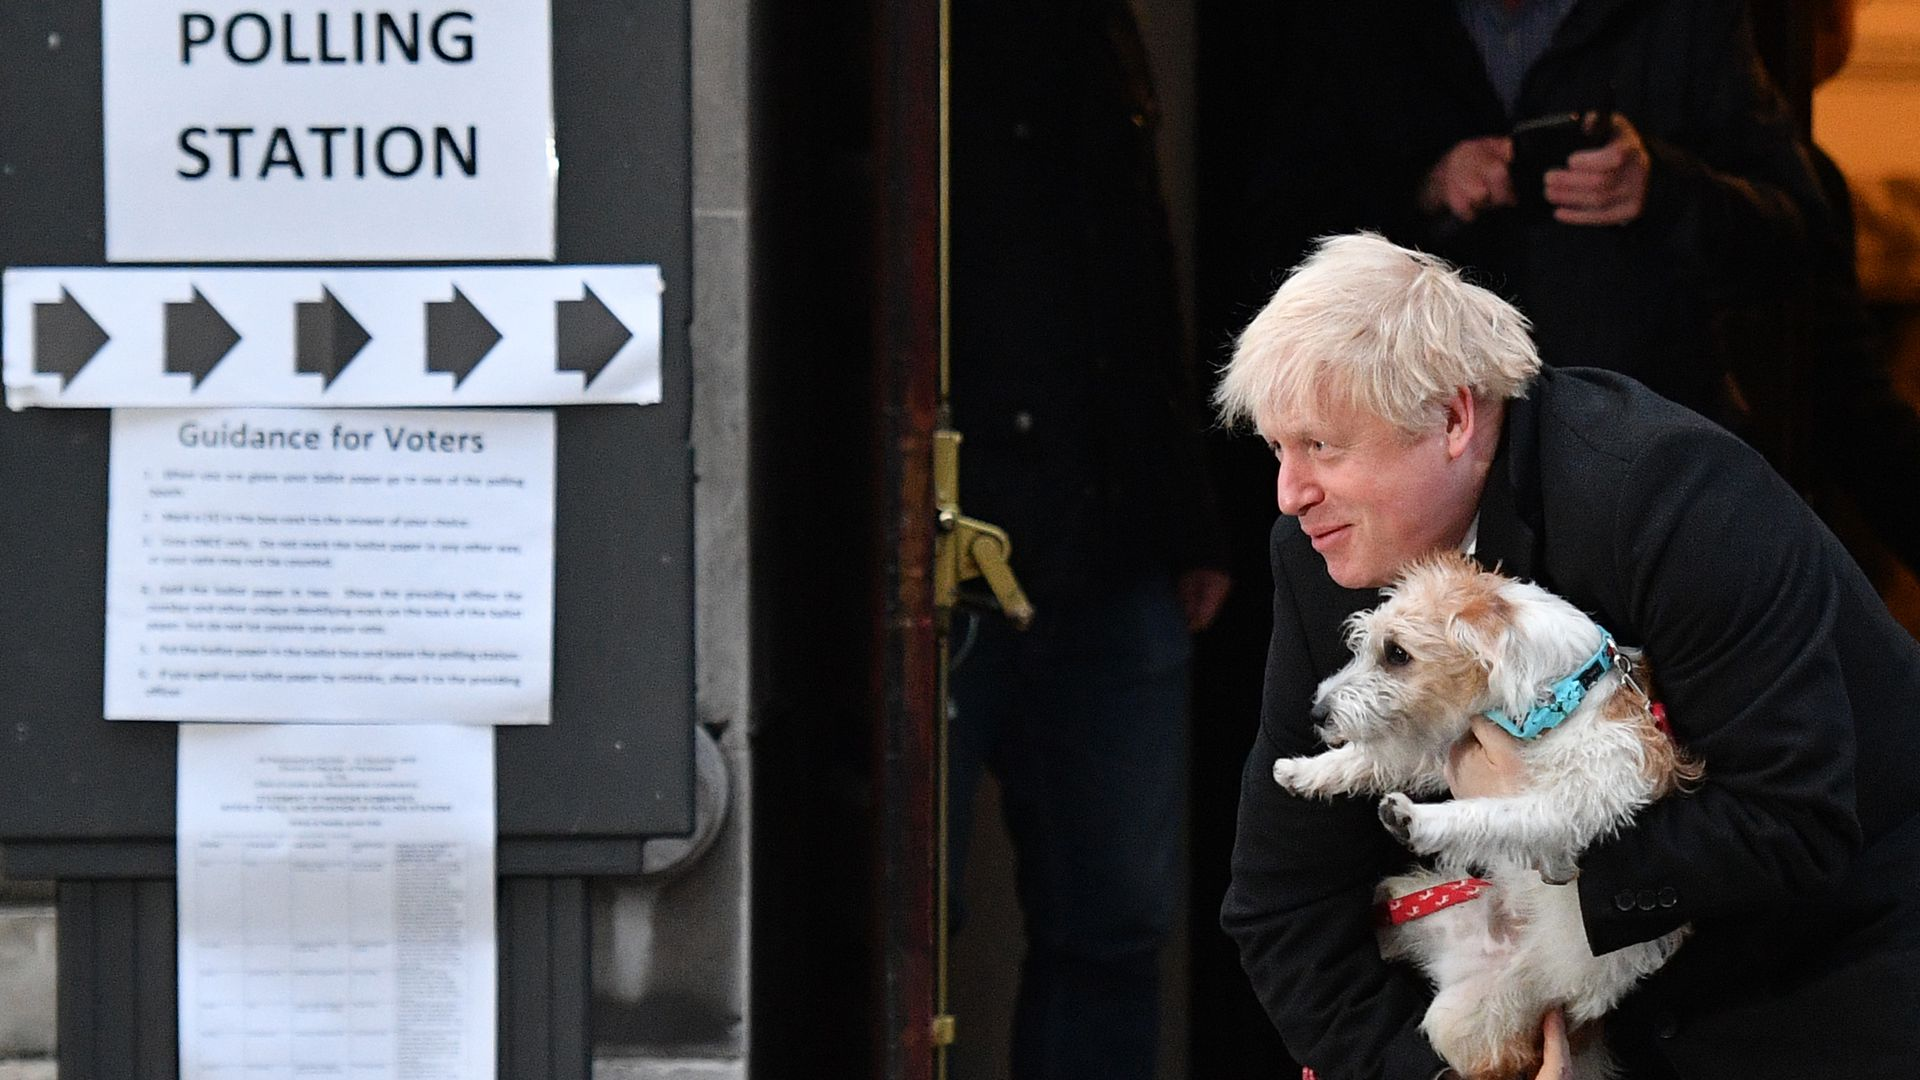 Britain's Prime Minister Boris Johnson poses with his dog Dilyn as he leaves from a Polling Station